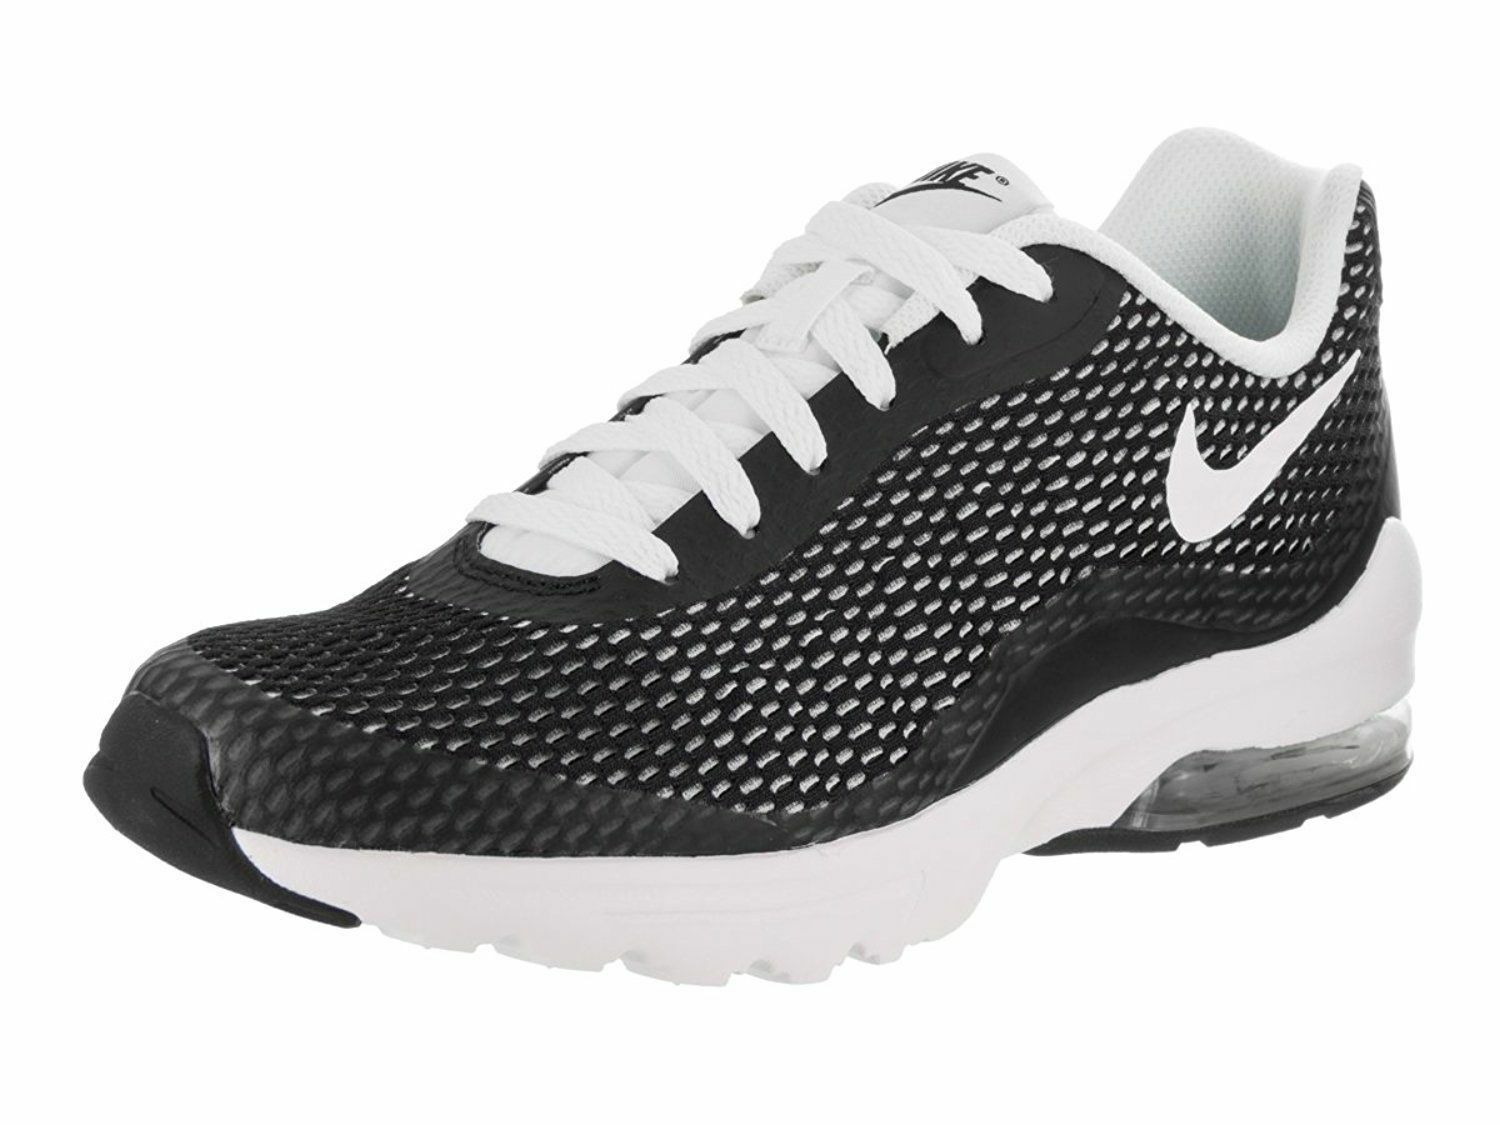 NIKE AIR MAX INVIGOR INVIGOR INVIGOR SE LOW RUNNING MEN SHOES BLACK WHITE 70614-003 SIZE 10 NEW b99b51